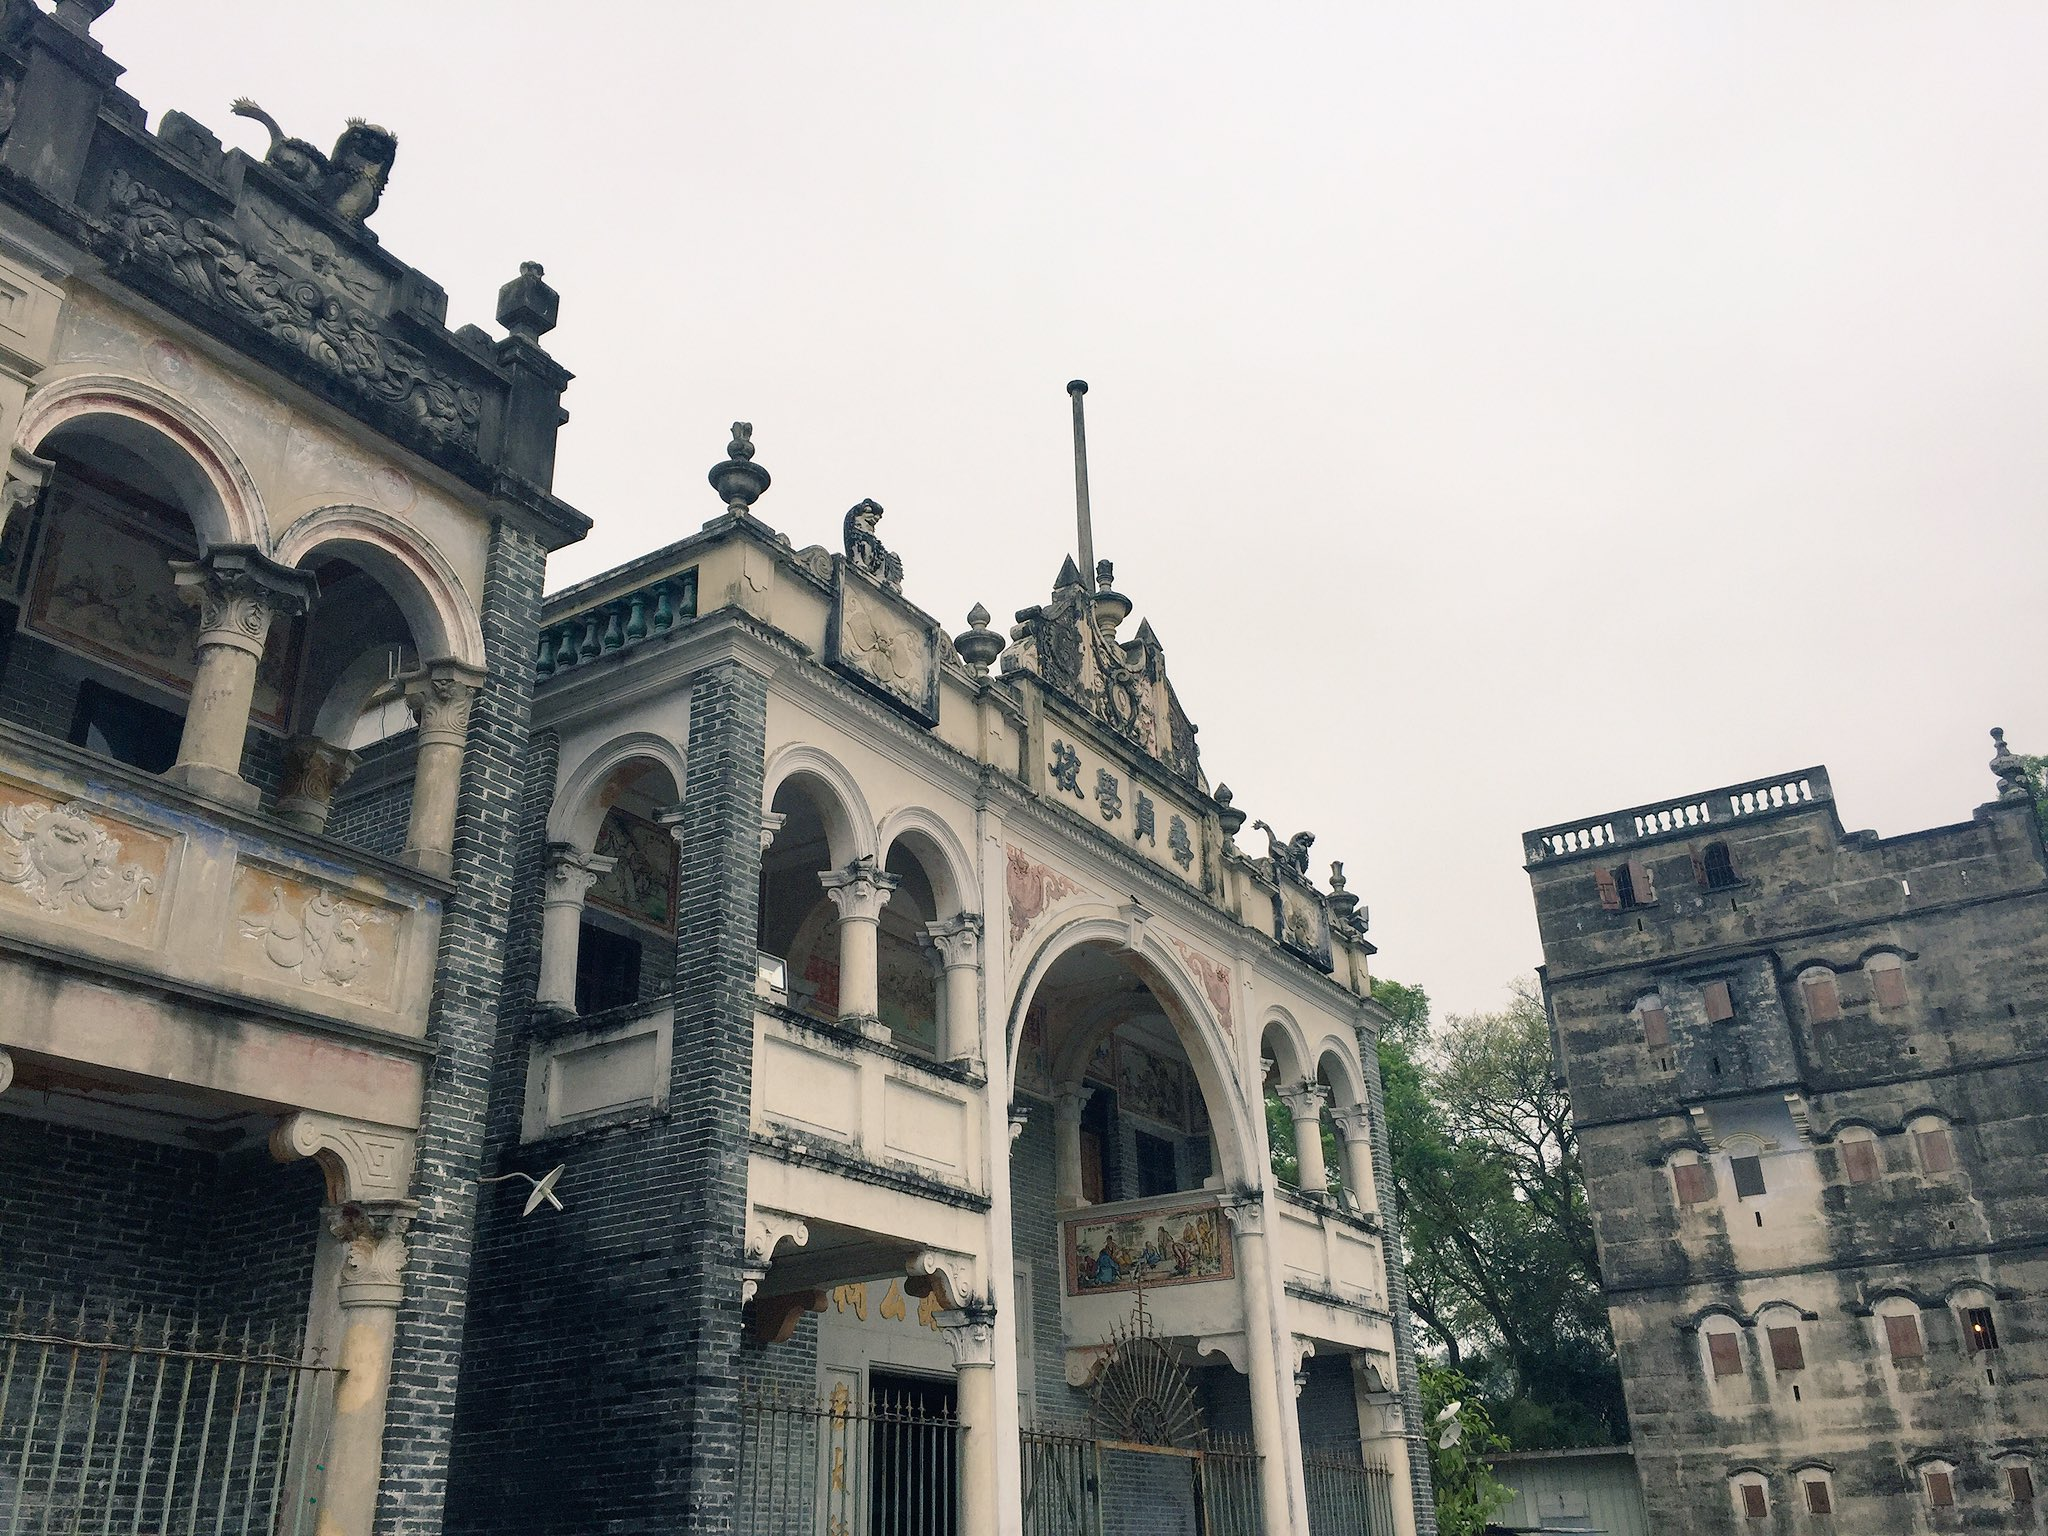 On Day 3 we're visiting the Candong heritage project in Kaiping with Selia Tan. #cahht17 https://t.co/MP0dwttbjb